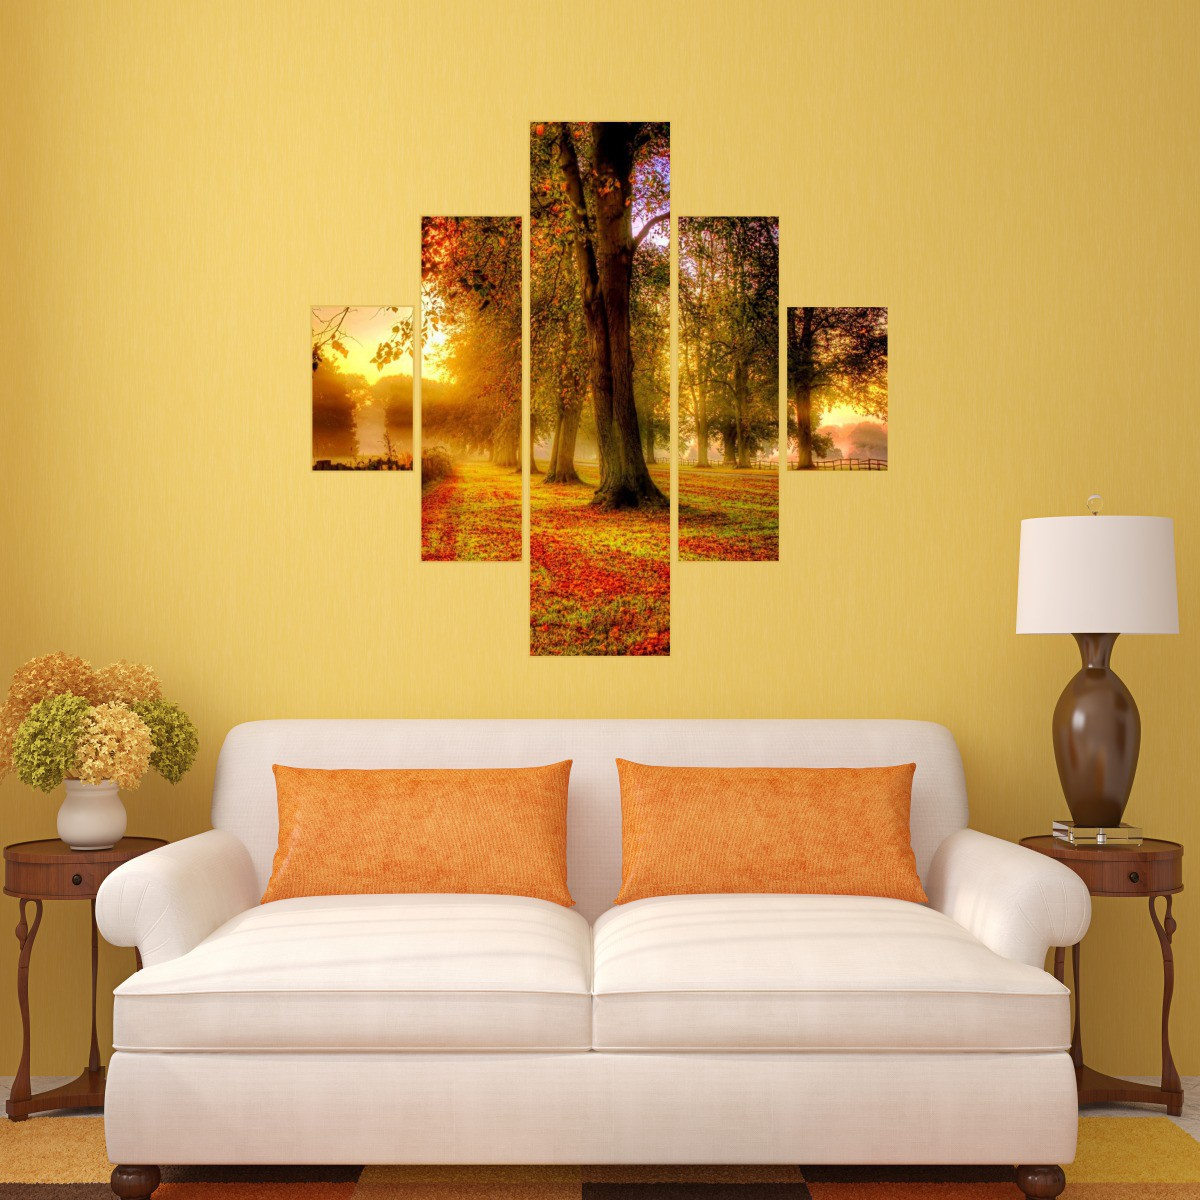 Deals | Super Deal Price Multi Panel Paintings